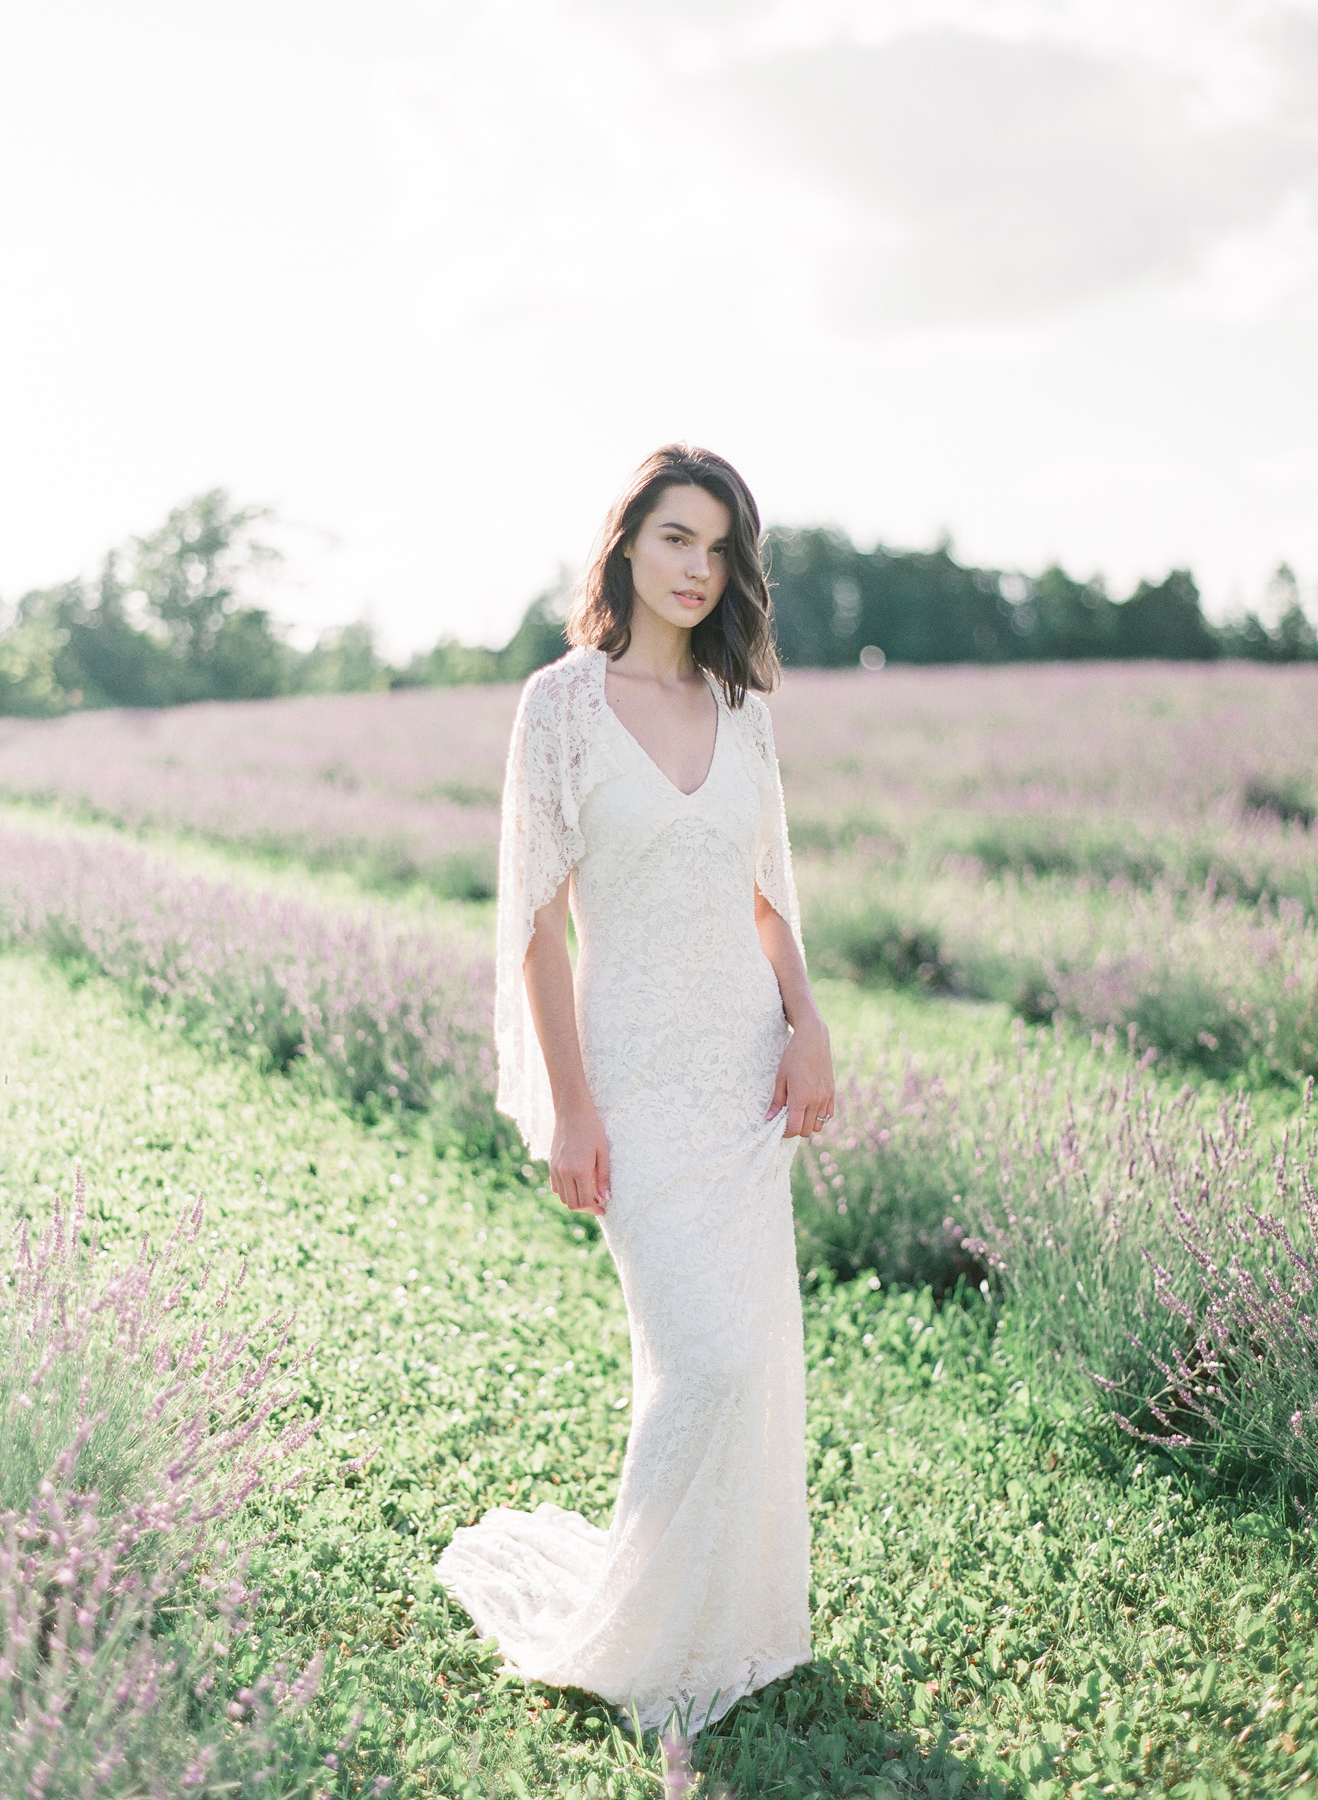 Lavender Wedding Inspiration | Artiese Studios | Rainbow Chan Weddings | Canadian Wedding | Toronto Wedding Photographer | Toronto Wedding | Fine Art Wedding Blog | Canadian Wedding Blog | Joy Wed